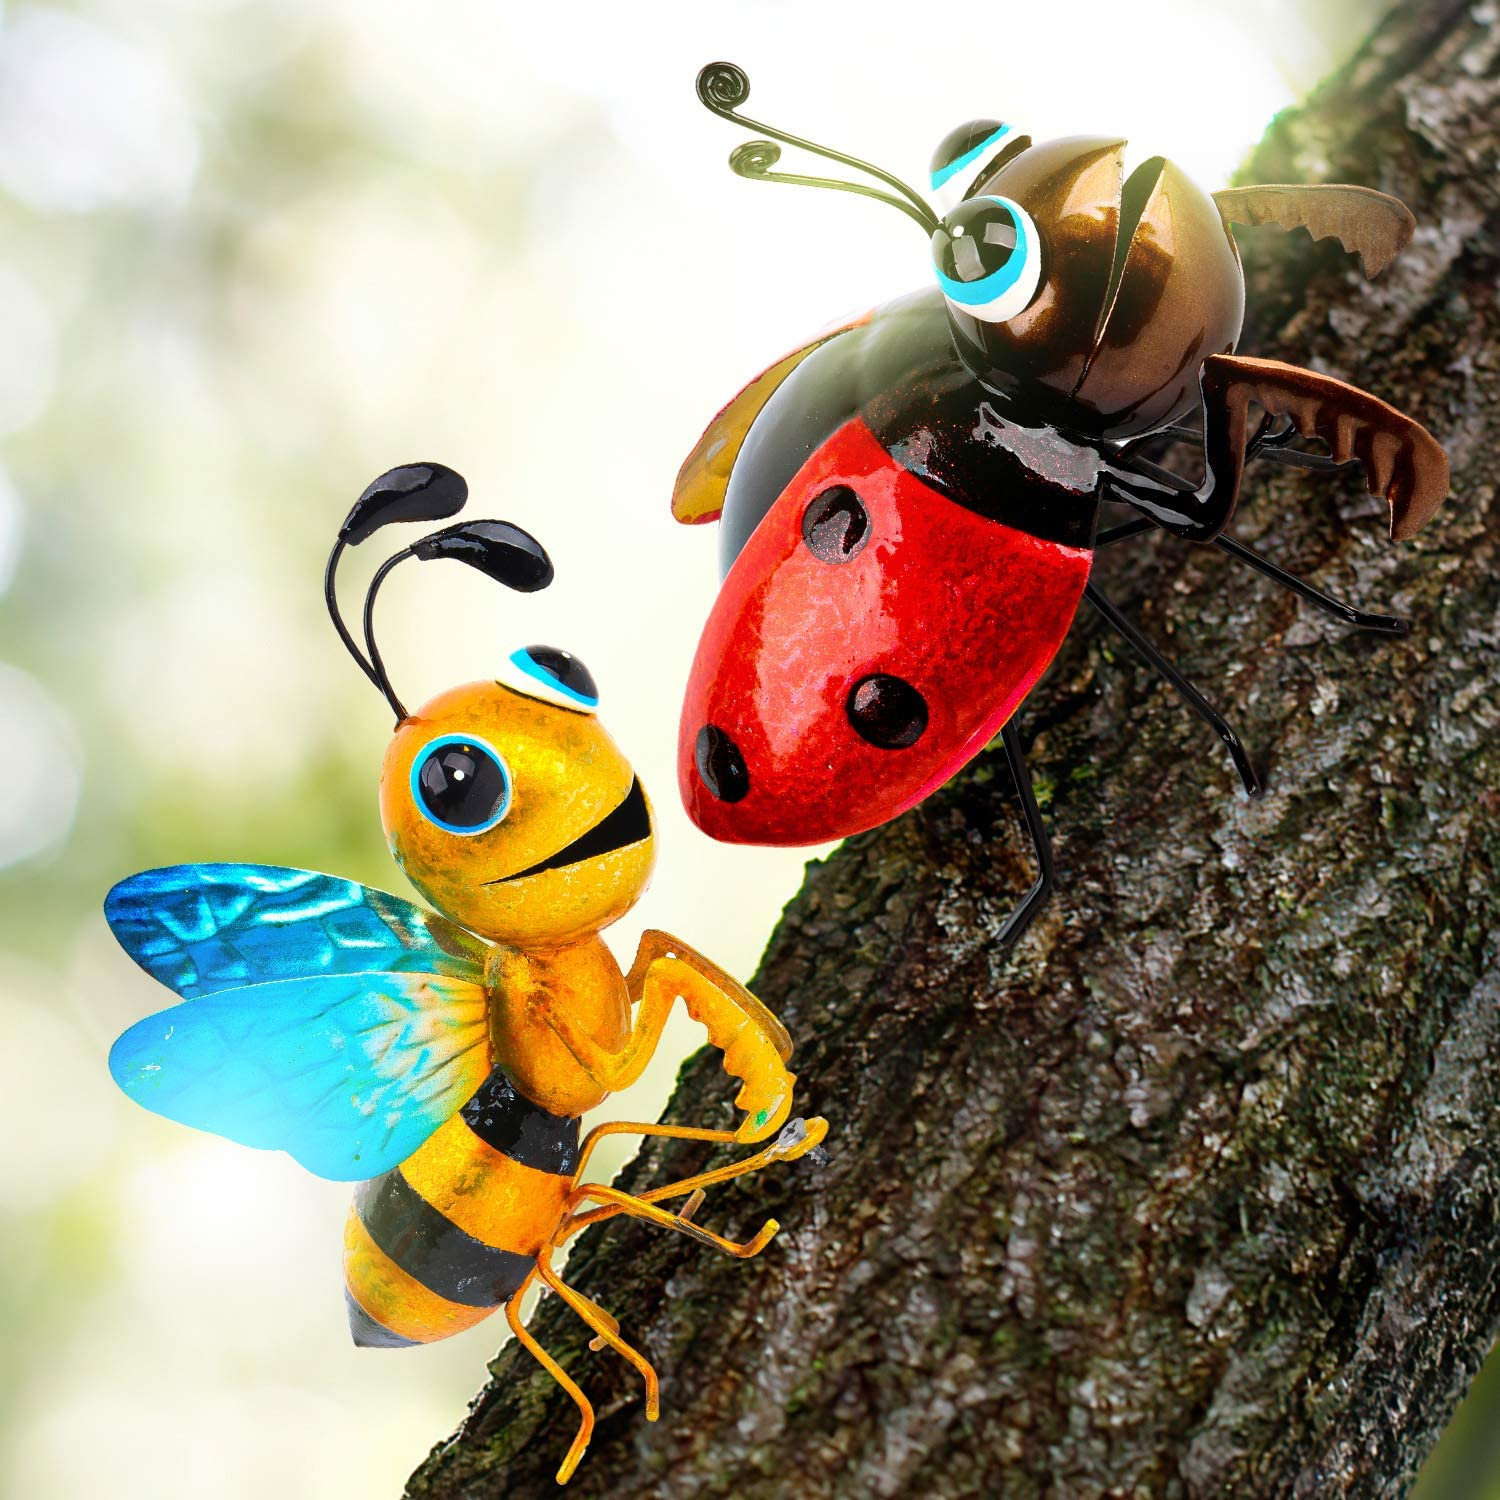 Metal Art for Yard, Set of 2 - Ladybug and Honeybee - Adorable Tree Decor/Wall Sculptures for Indoor and Outdoor Decoration - Colorful Fun Handmade 3D Art